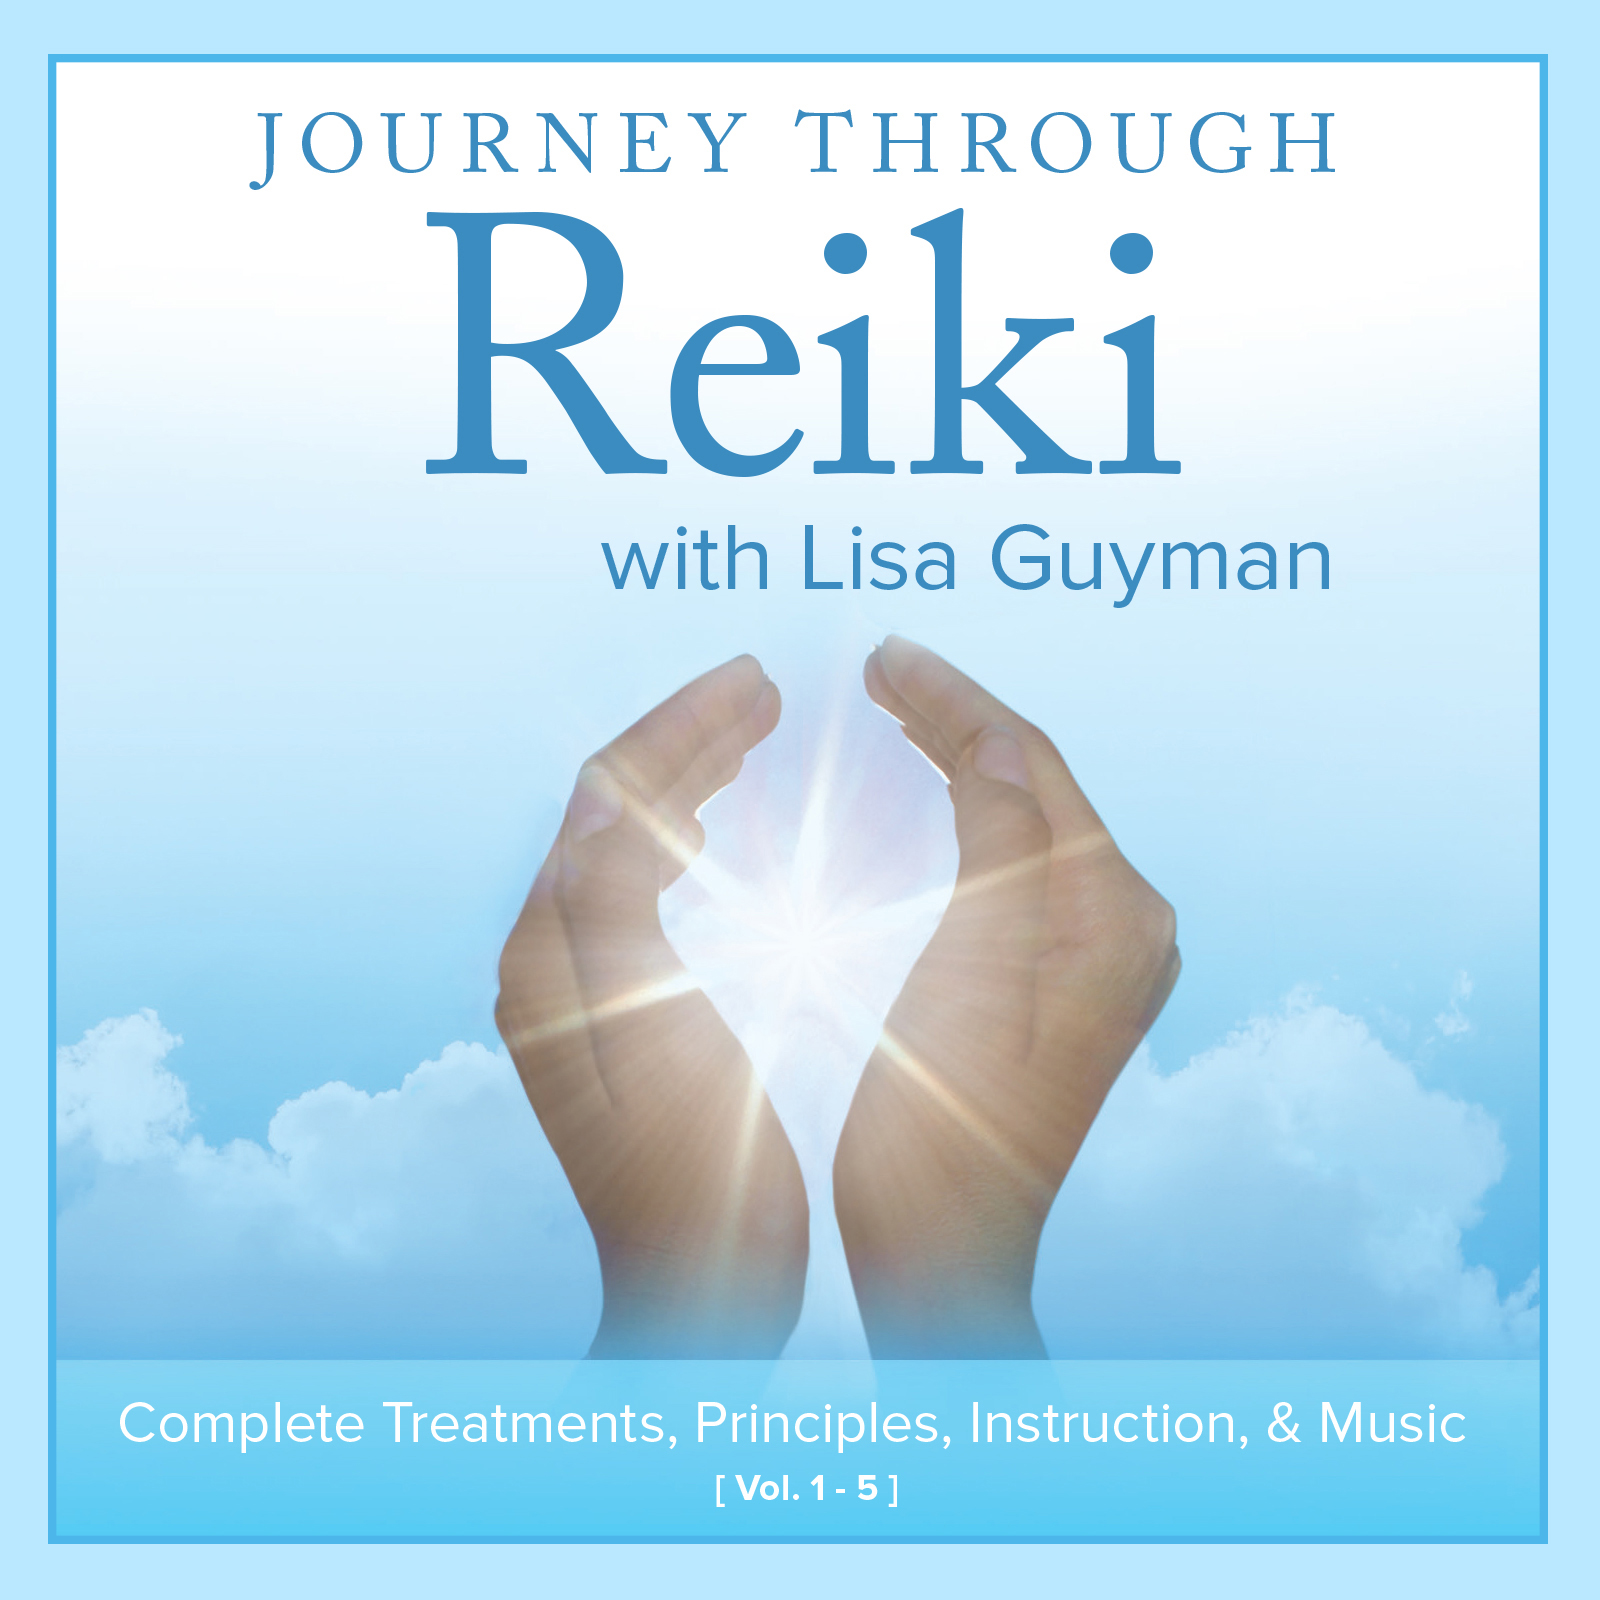 Journey Through Reiki